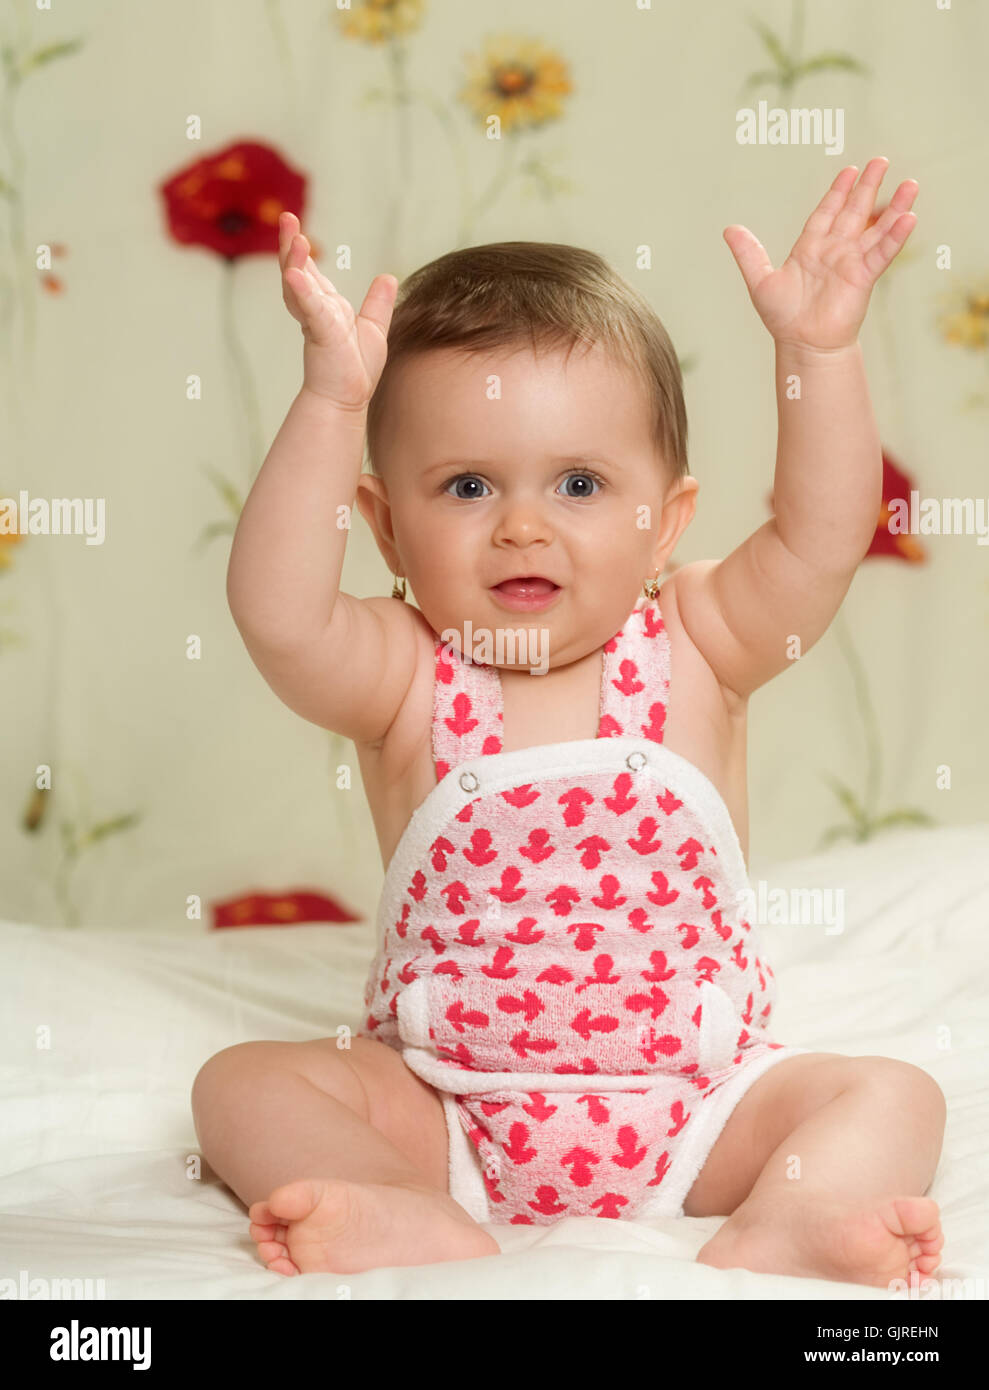 baby delighted unambitious - Stock Image